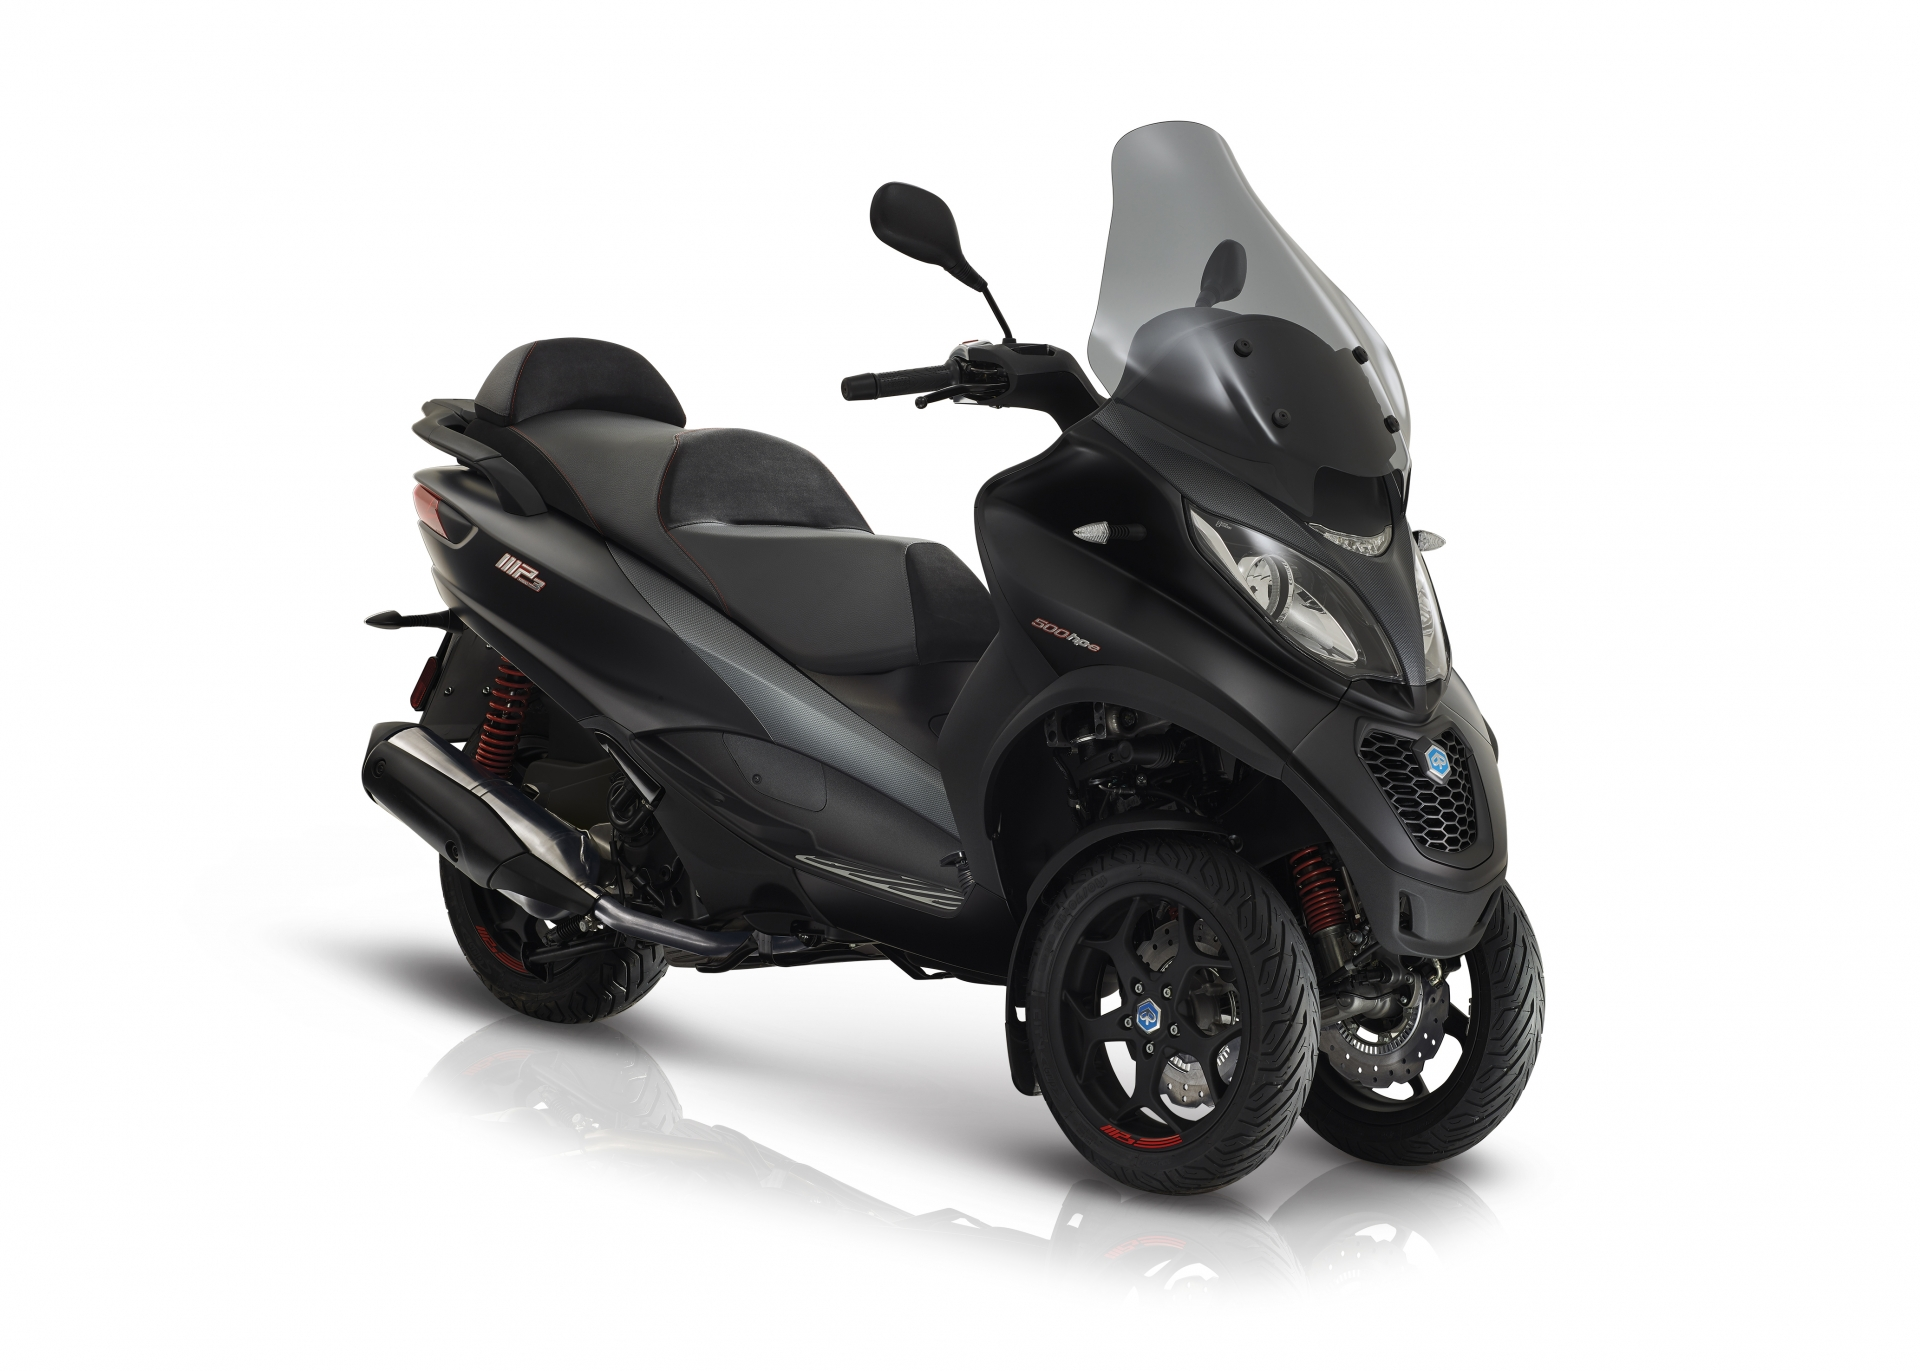 piaggio mp3 hpe sport business 500 350 motor scooter nieuw led